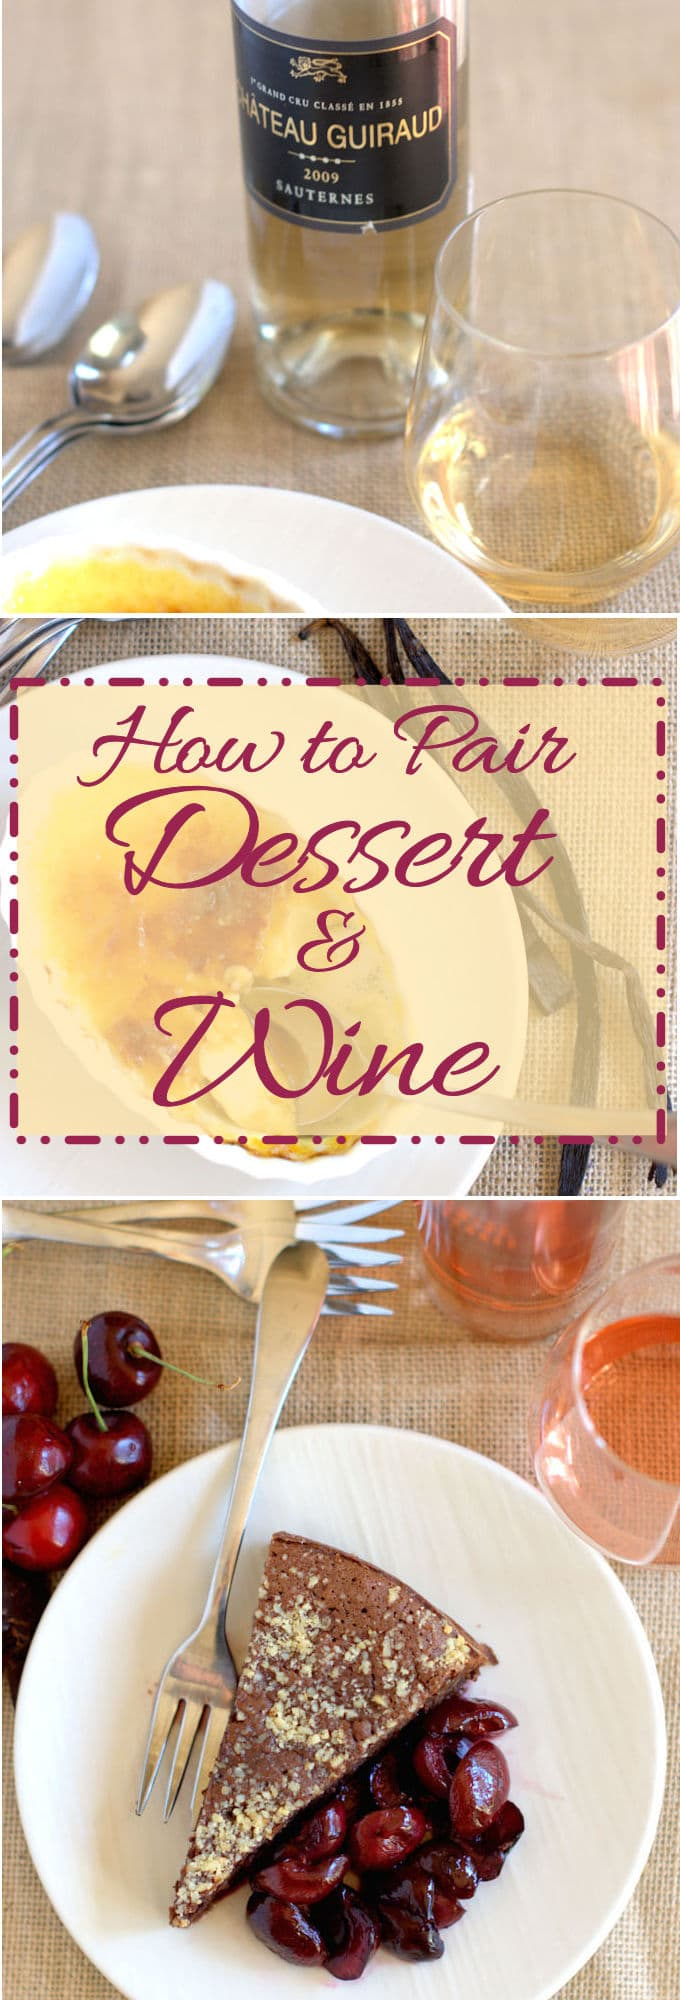 You don't have to stop serving wine when the dessert is on the table. A few simple guidelines will help you pair your dessert with the right wine.